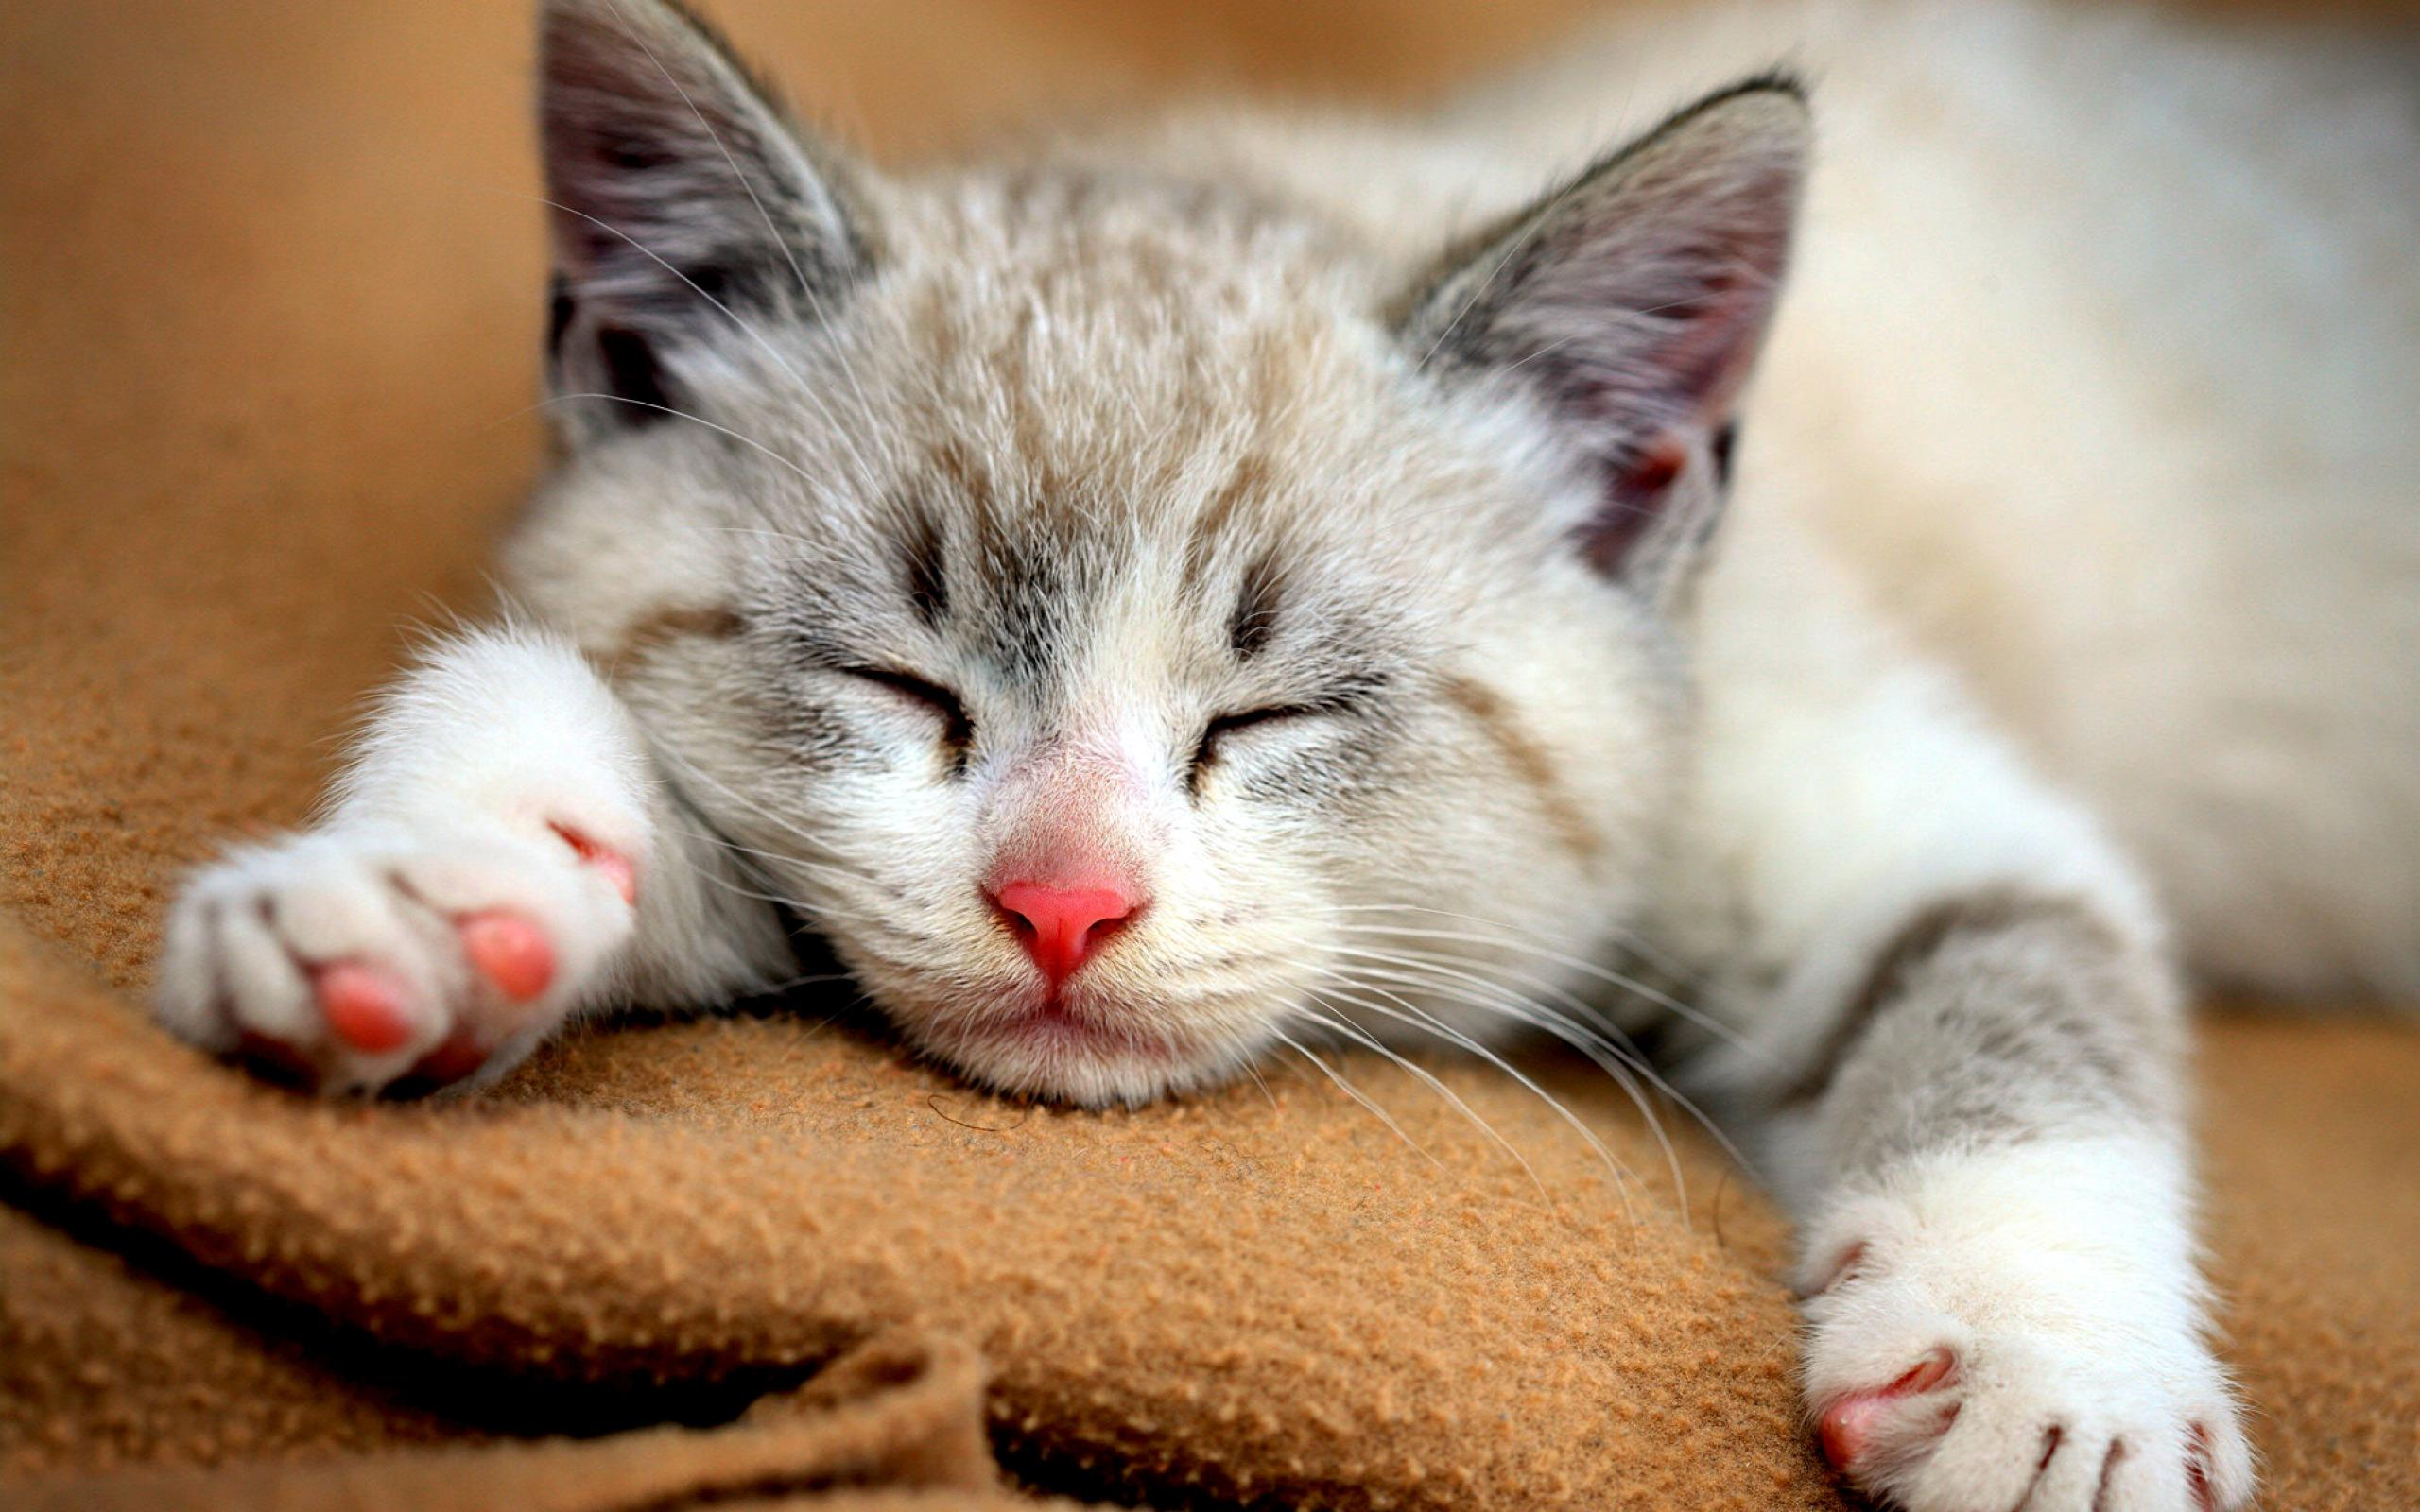 Cute Baby Kitten Cat Sleeping Laughsparkcom